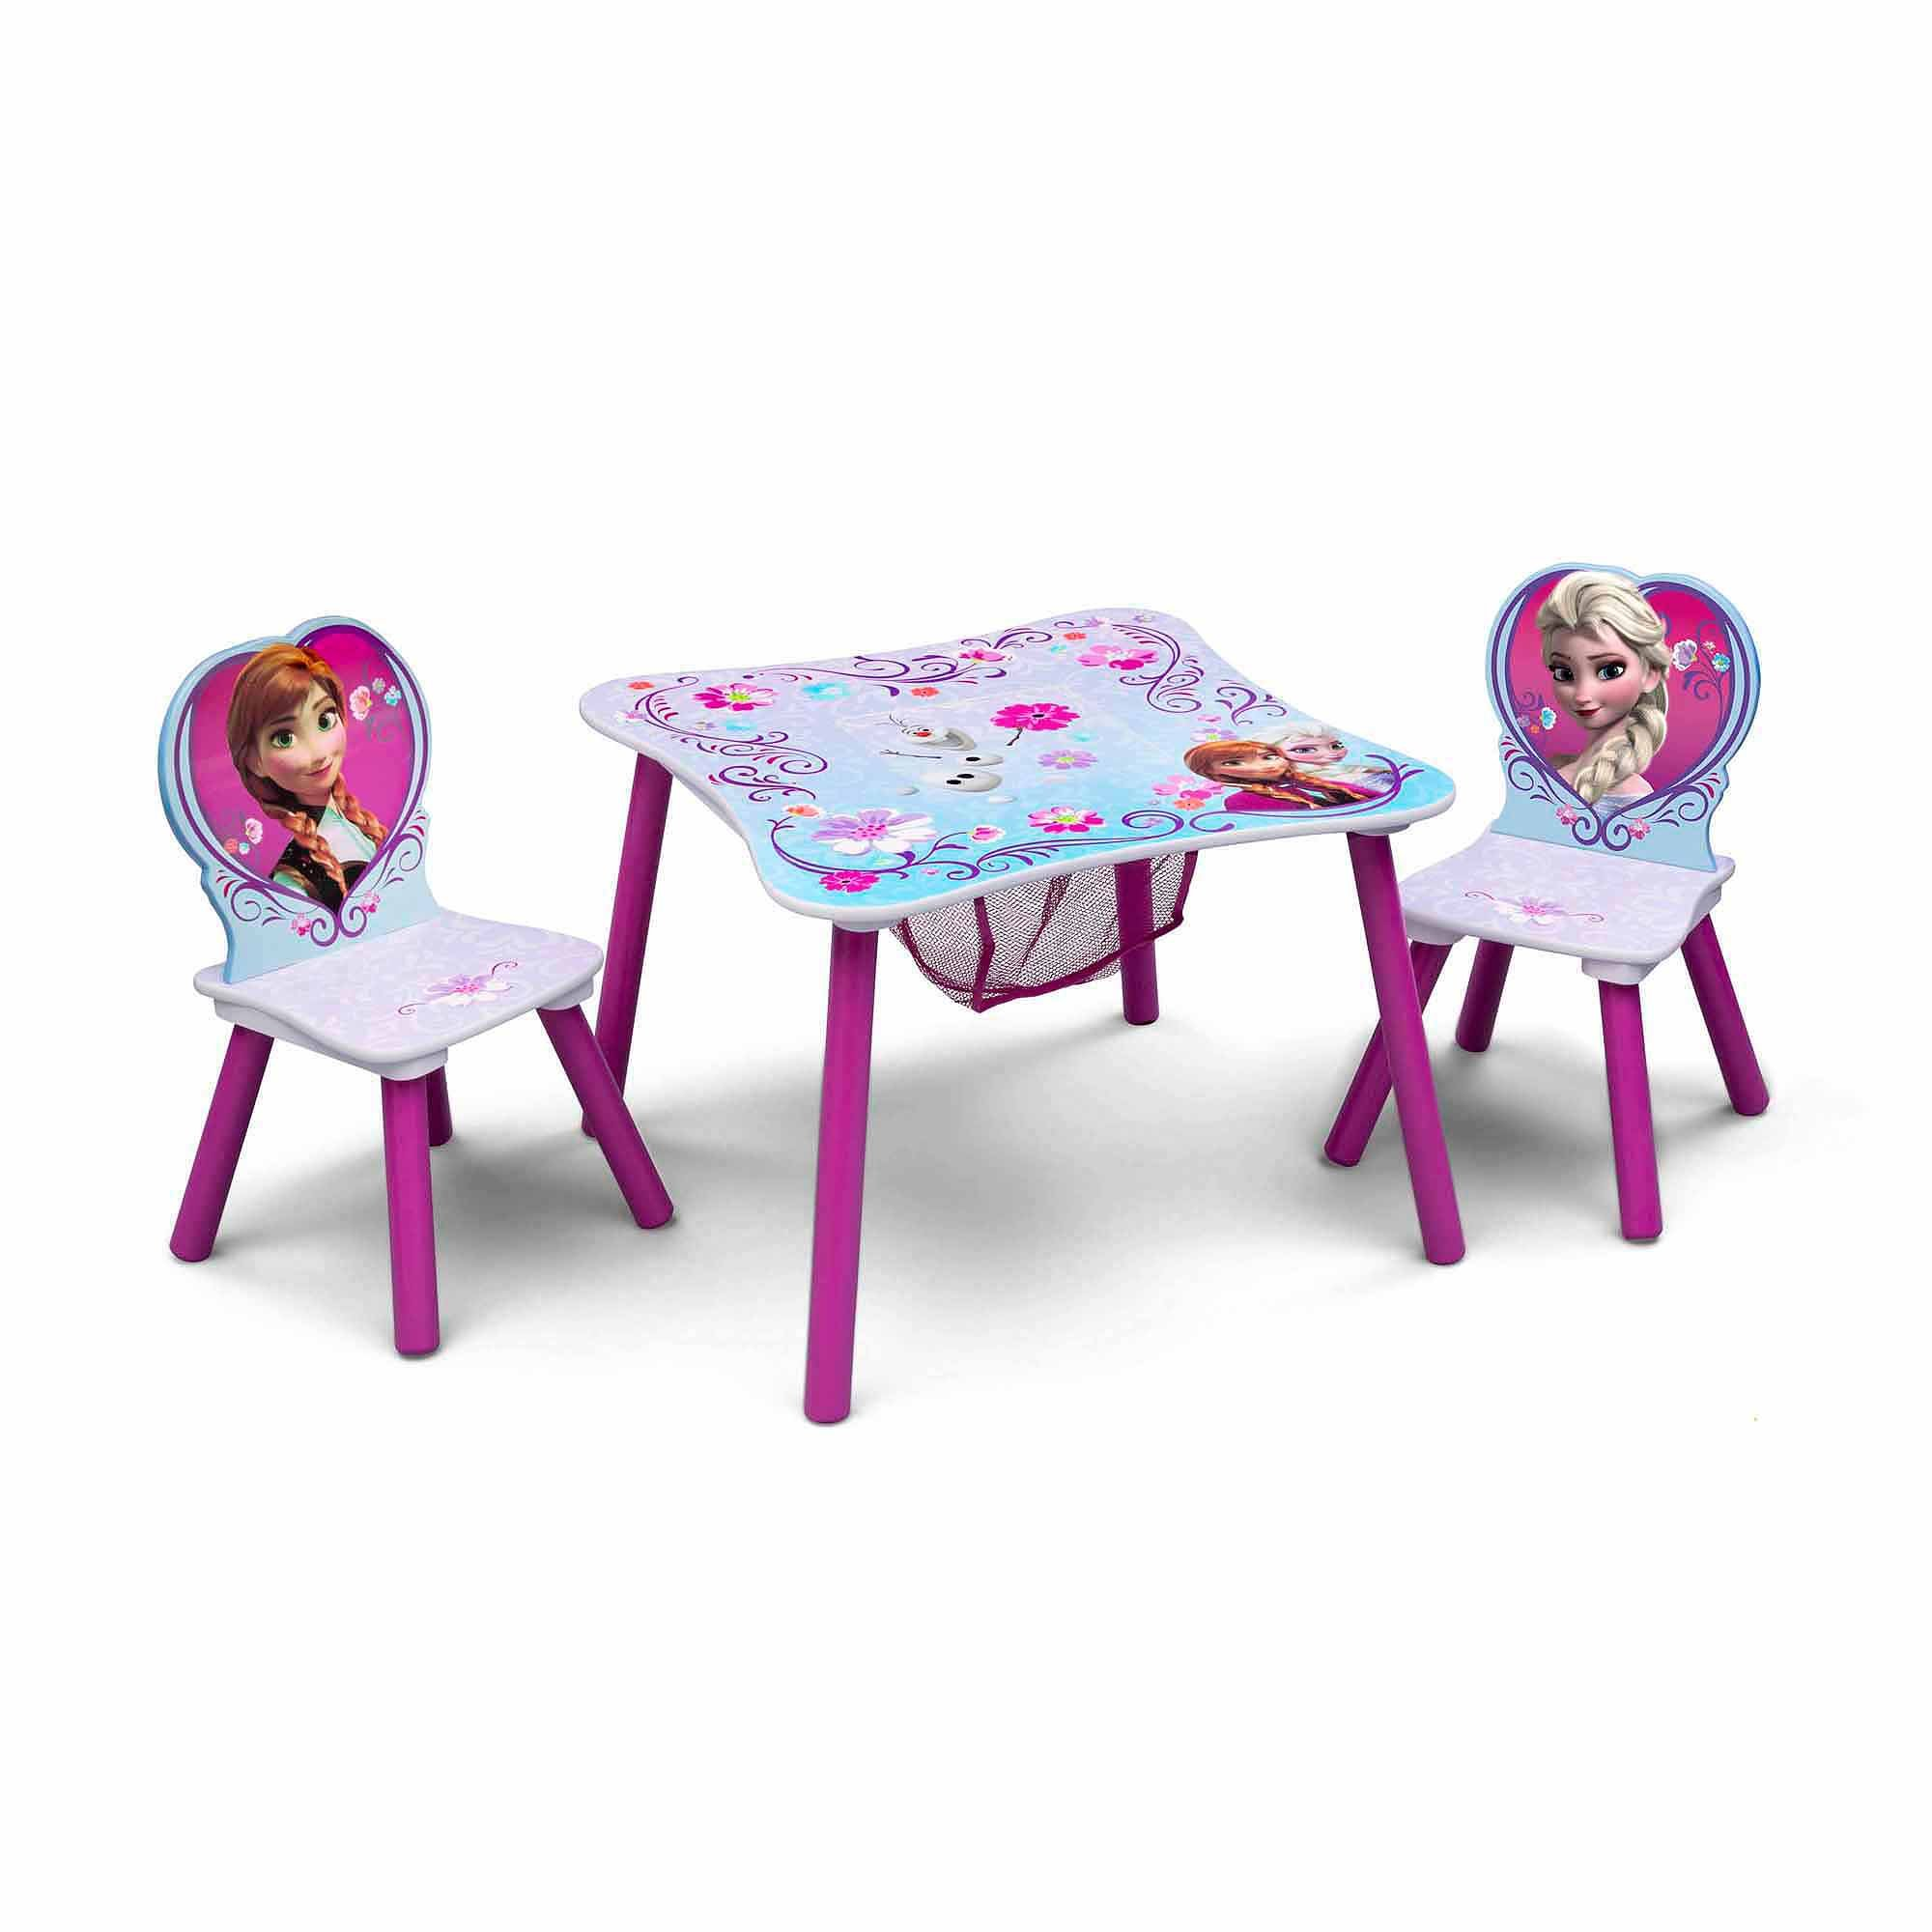 Disney Frozen Table and Chair Set with Storage by TT89494FZ (Image #3)